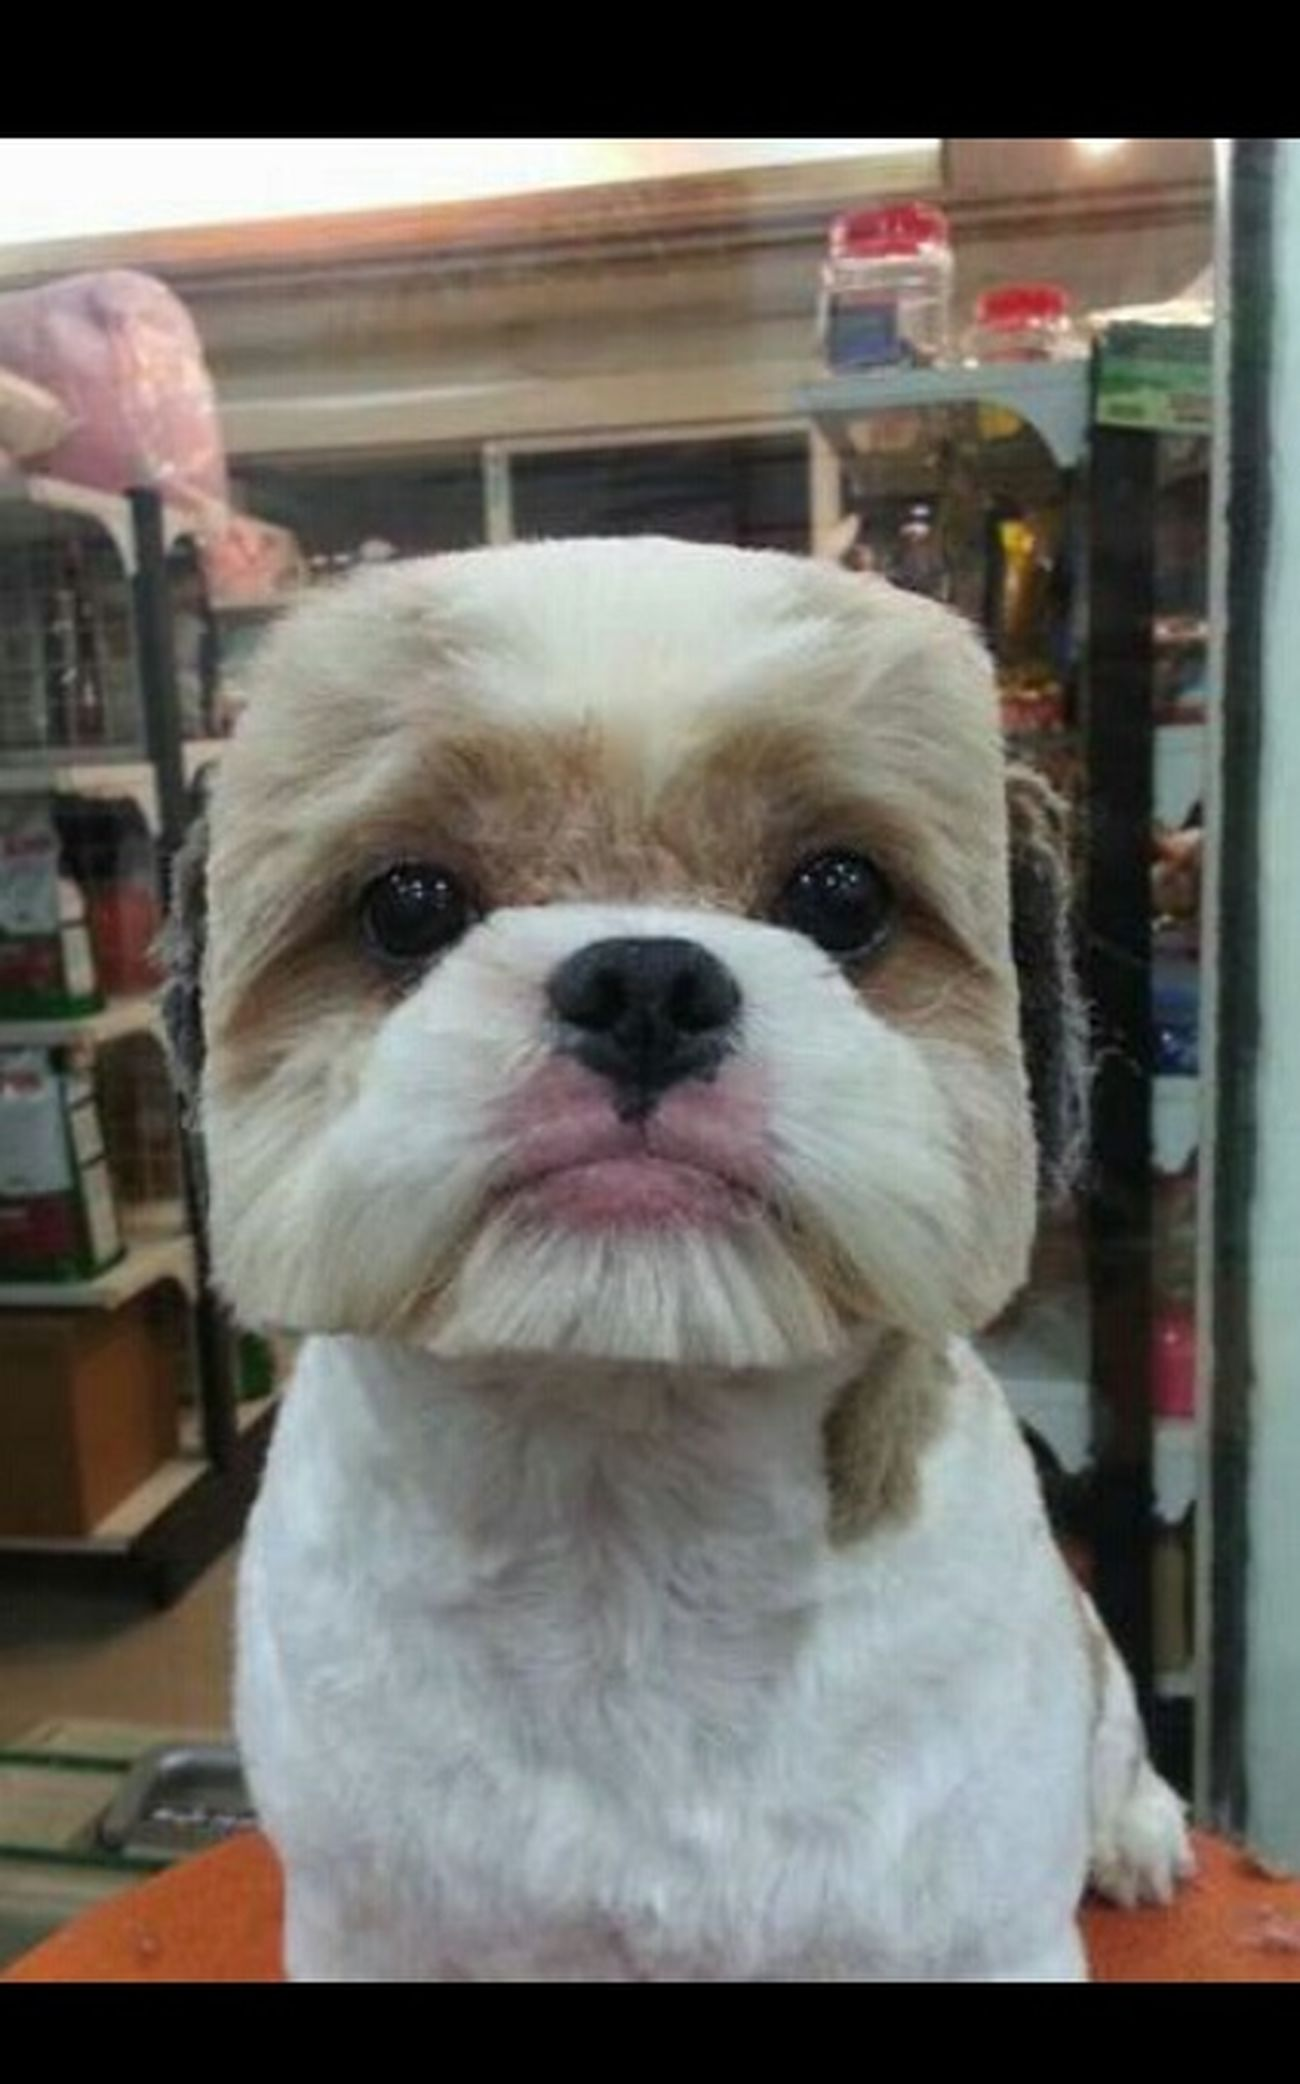 Dog Smile Sweetly <3 Minecraft Bite Me çipilçipil Japan Berber  Cut Hairstyles